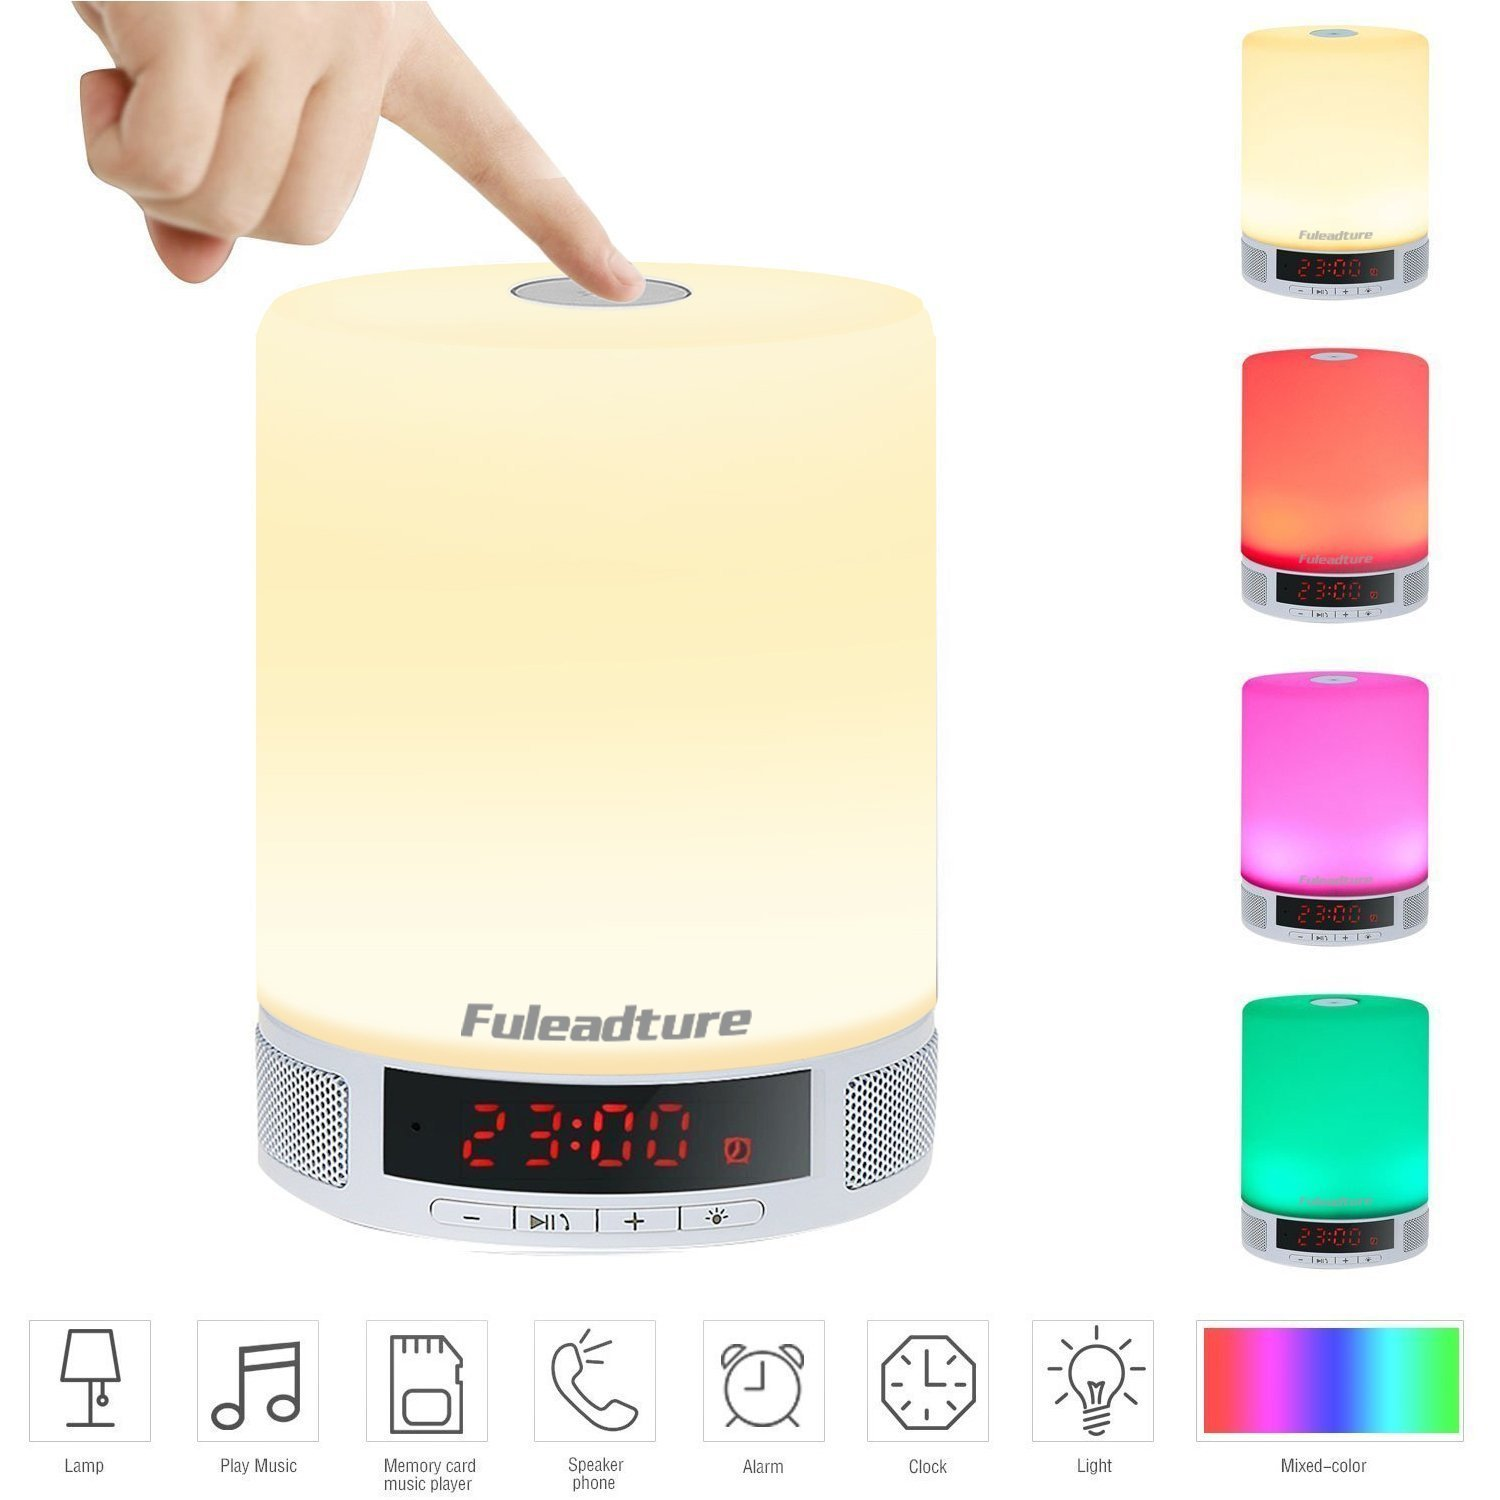 Amazon LED Bluetooth Speaker Fuleadture All in 1 Portable